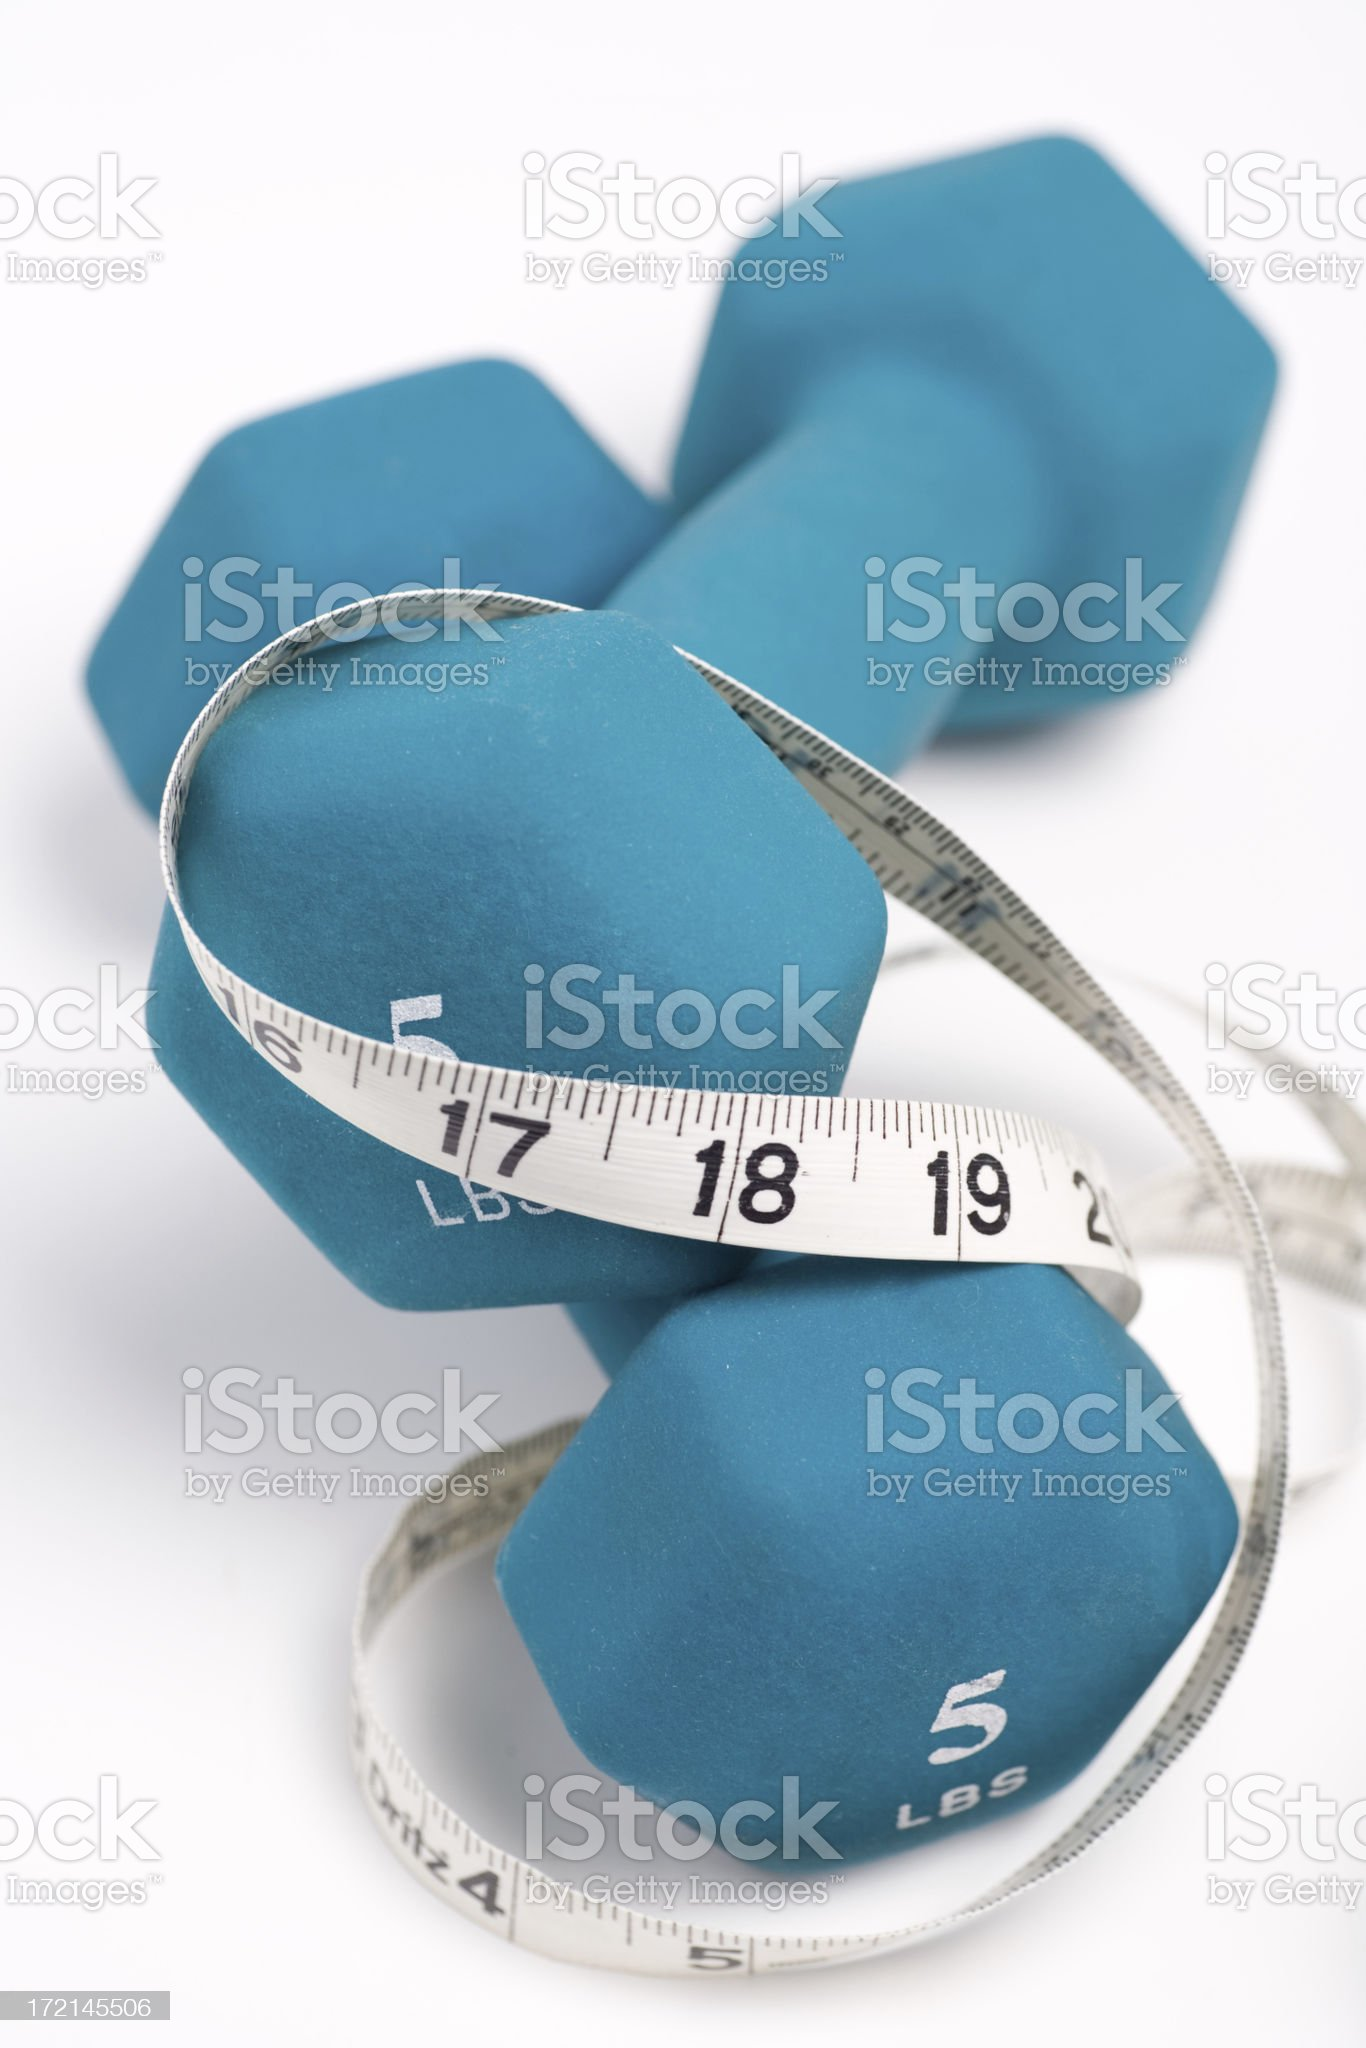 Dumbbells and Measuring Tape royalty-free stock photo